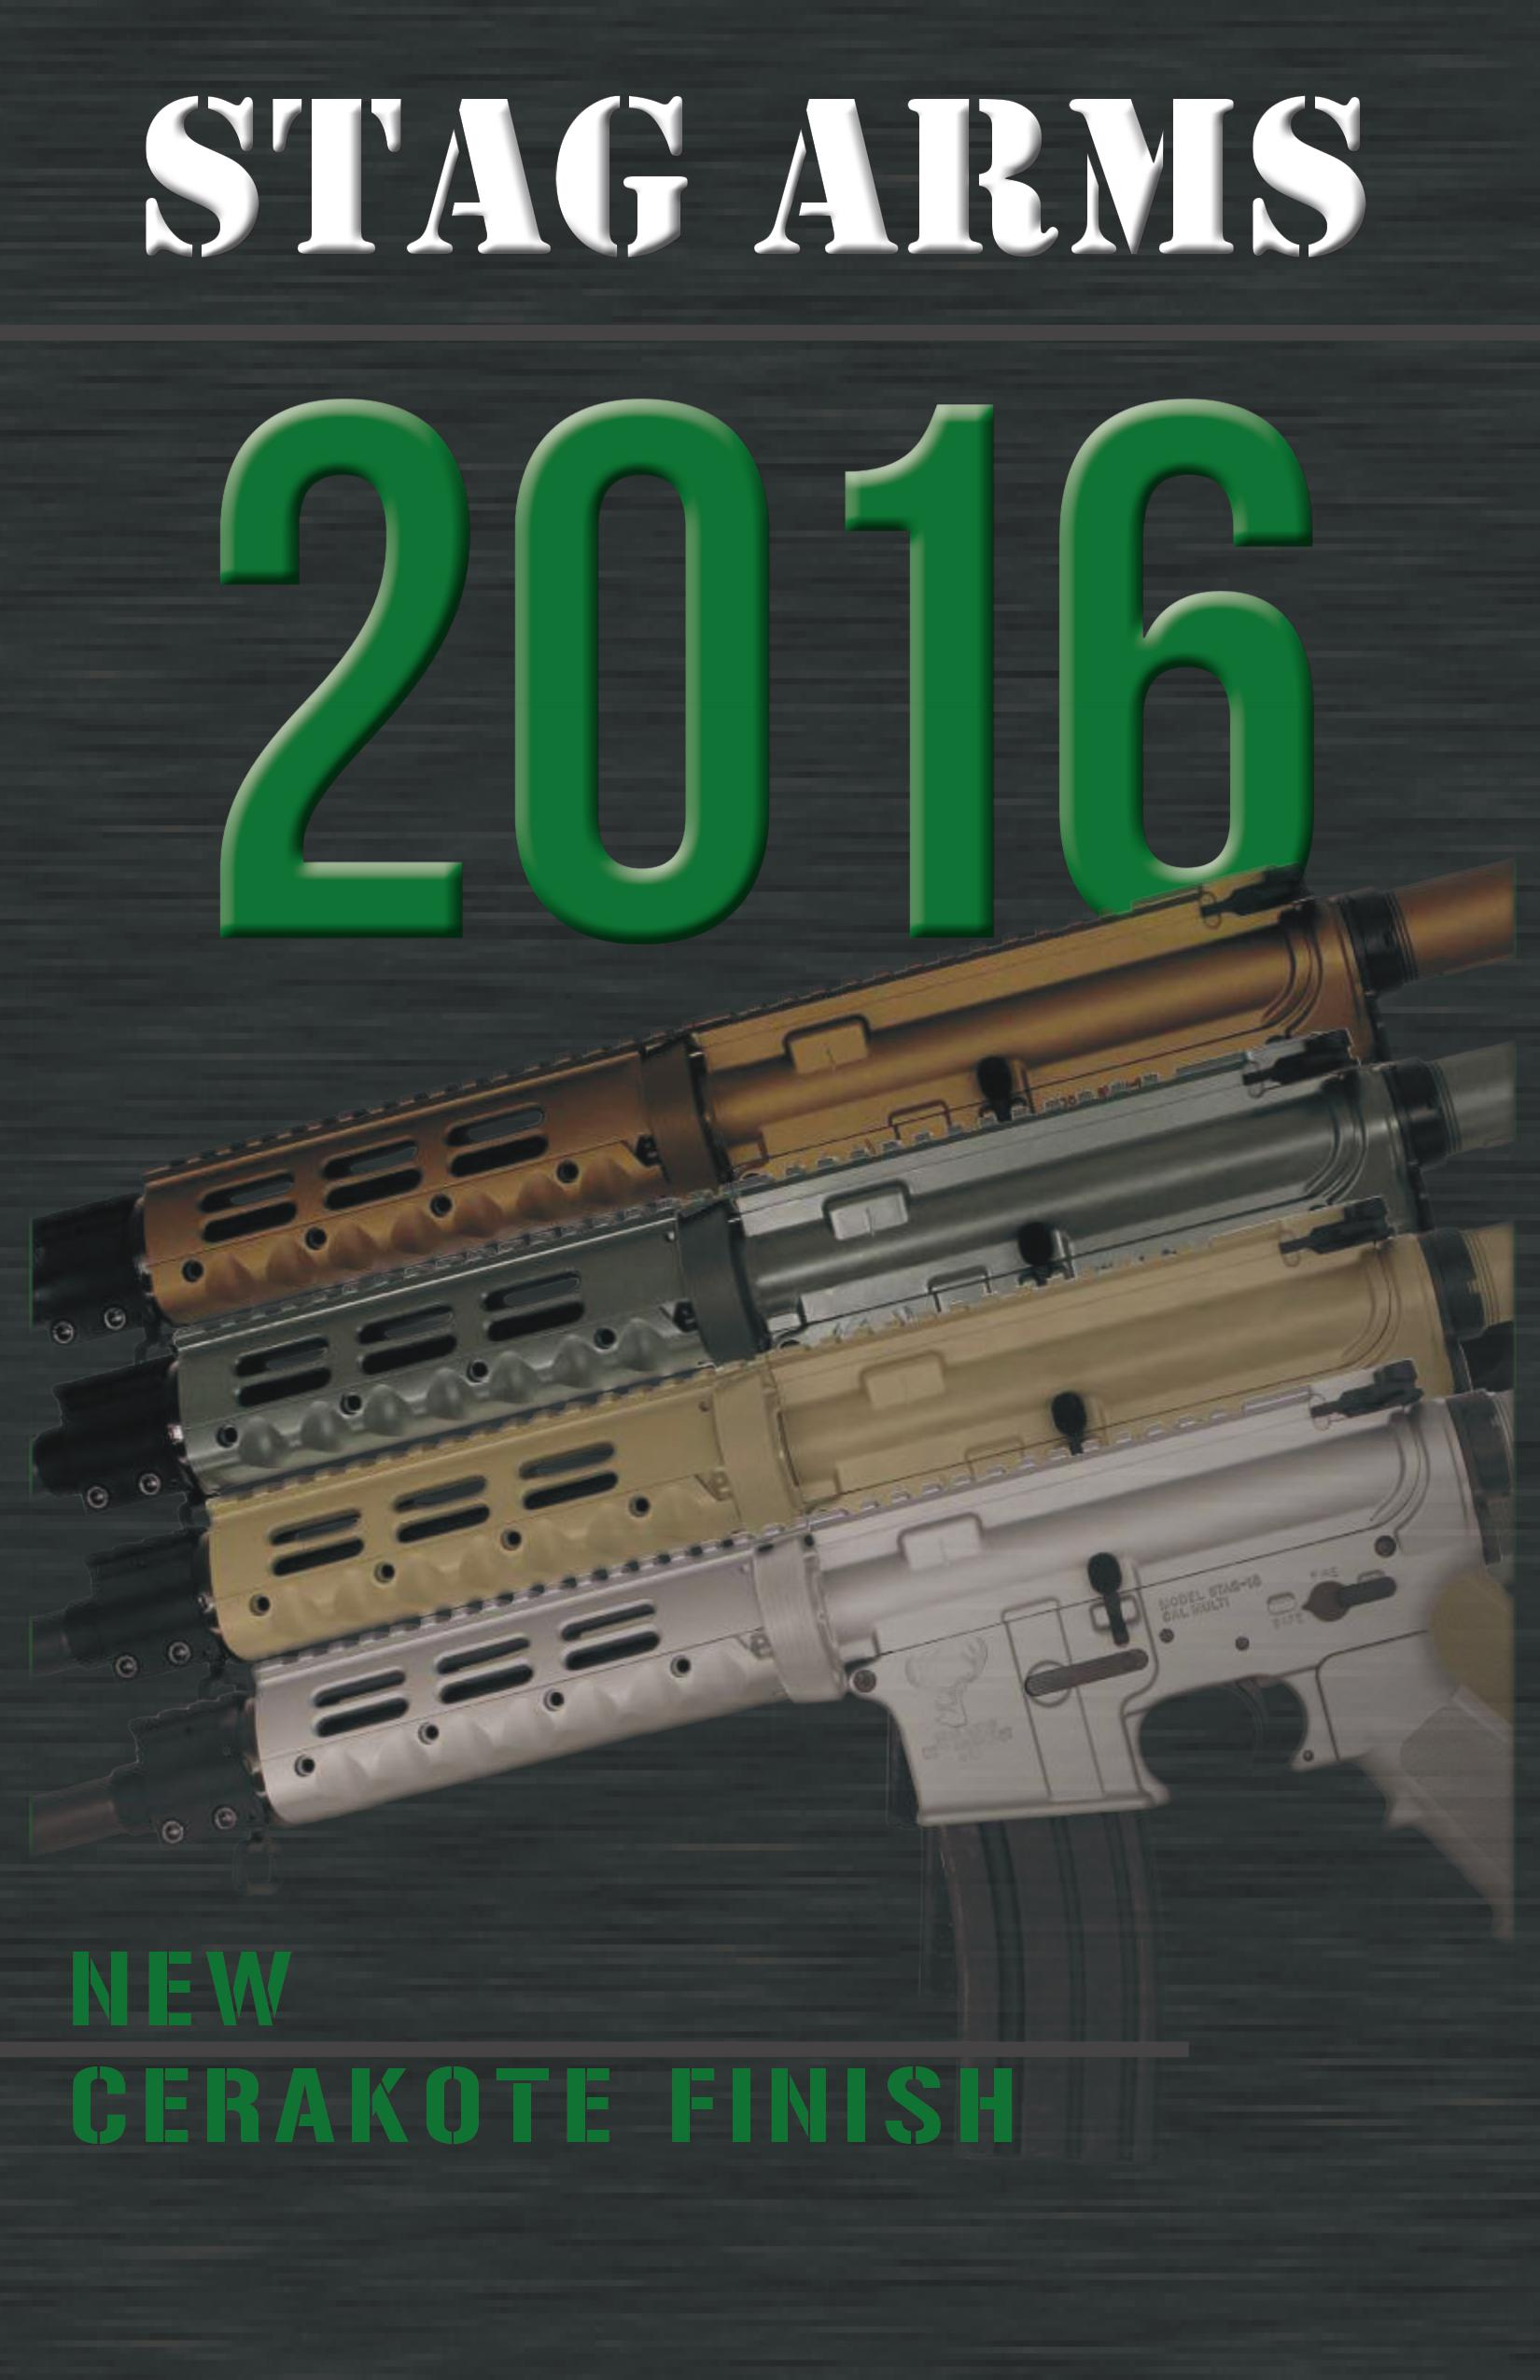 Stag-2016-catalog-cover.jpg